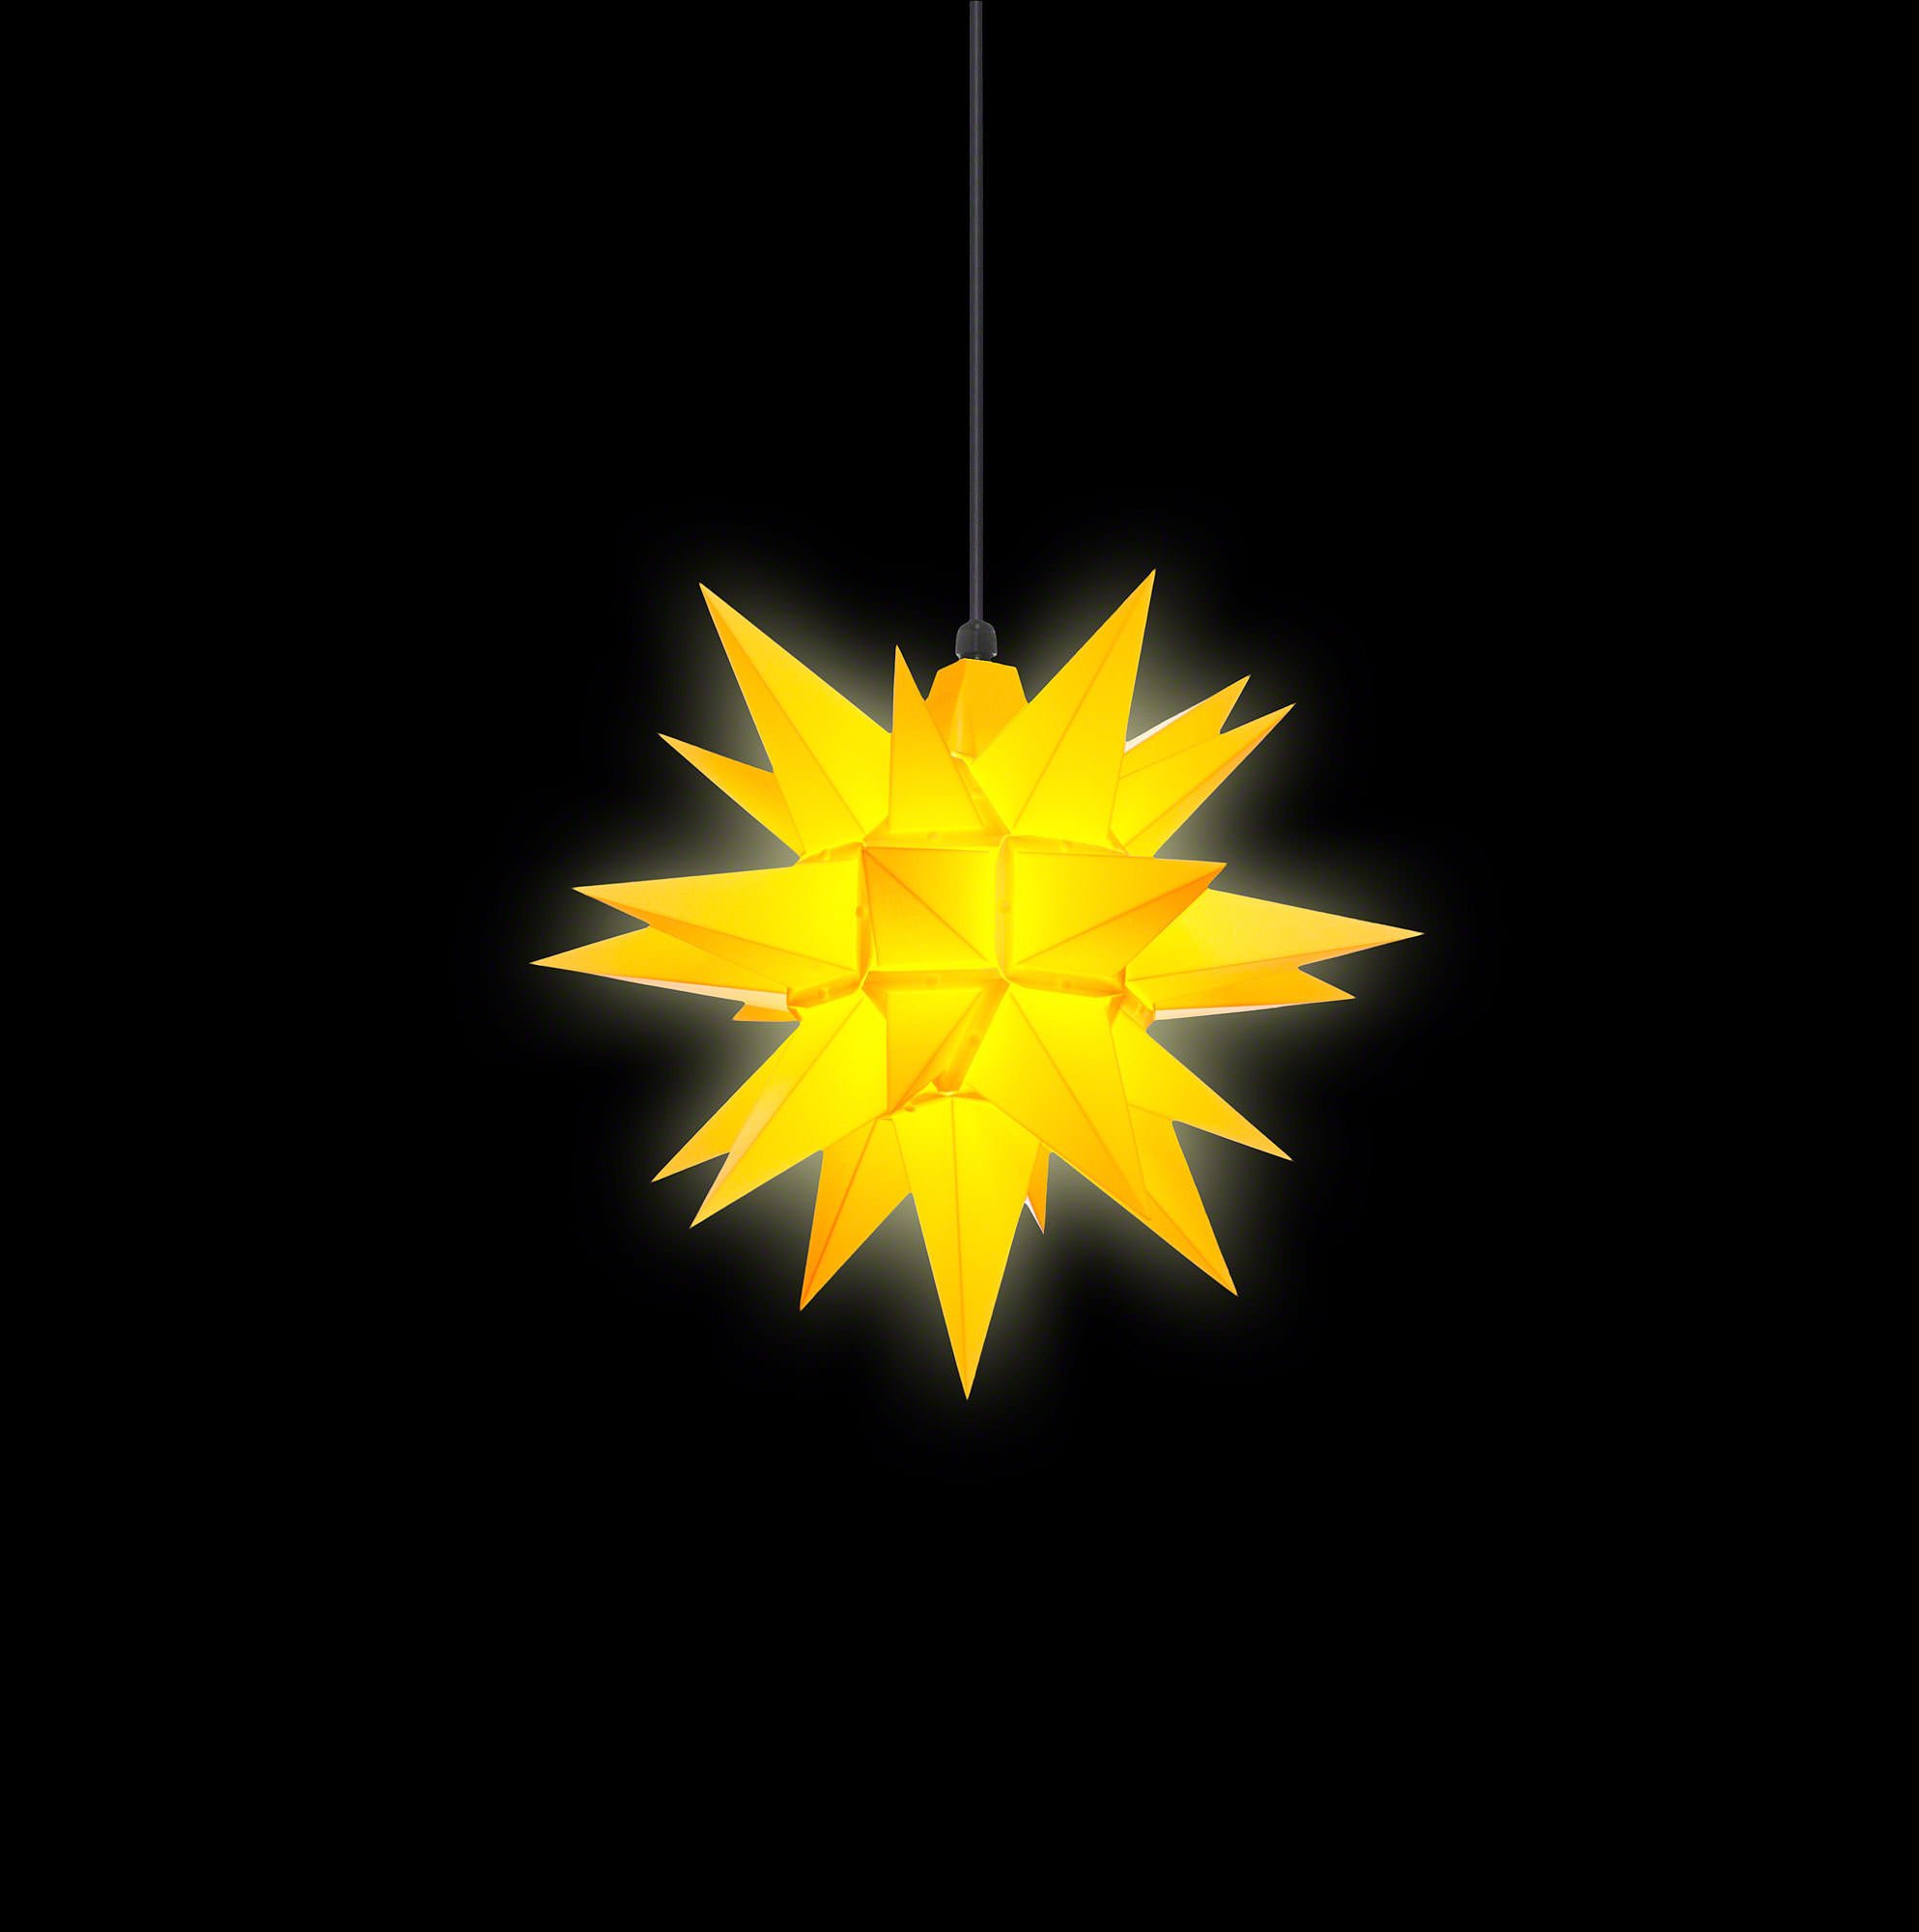 herrnhuter moravian star a4 yellow plastic 40cm 16in by herrnhuter sterne. Black Bedroom Furniture Sets. Home Design Ideas